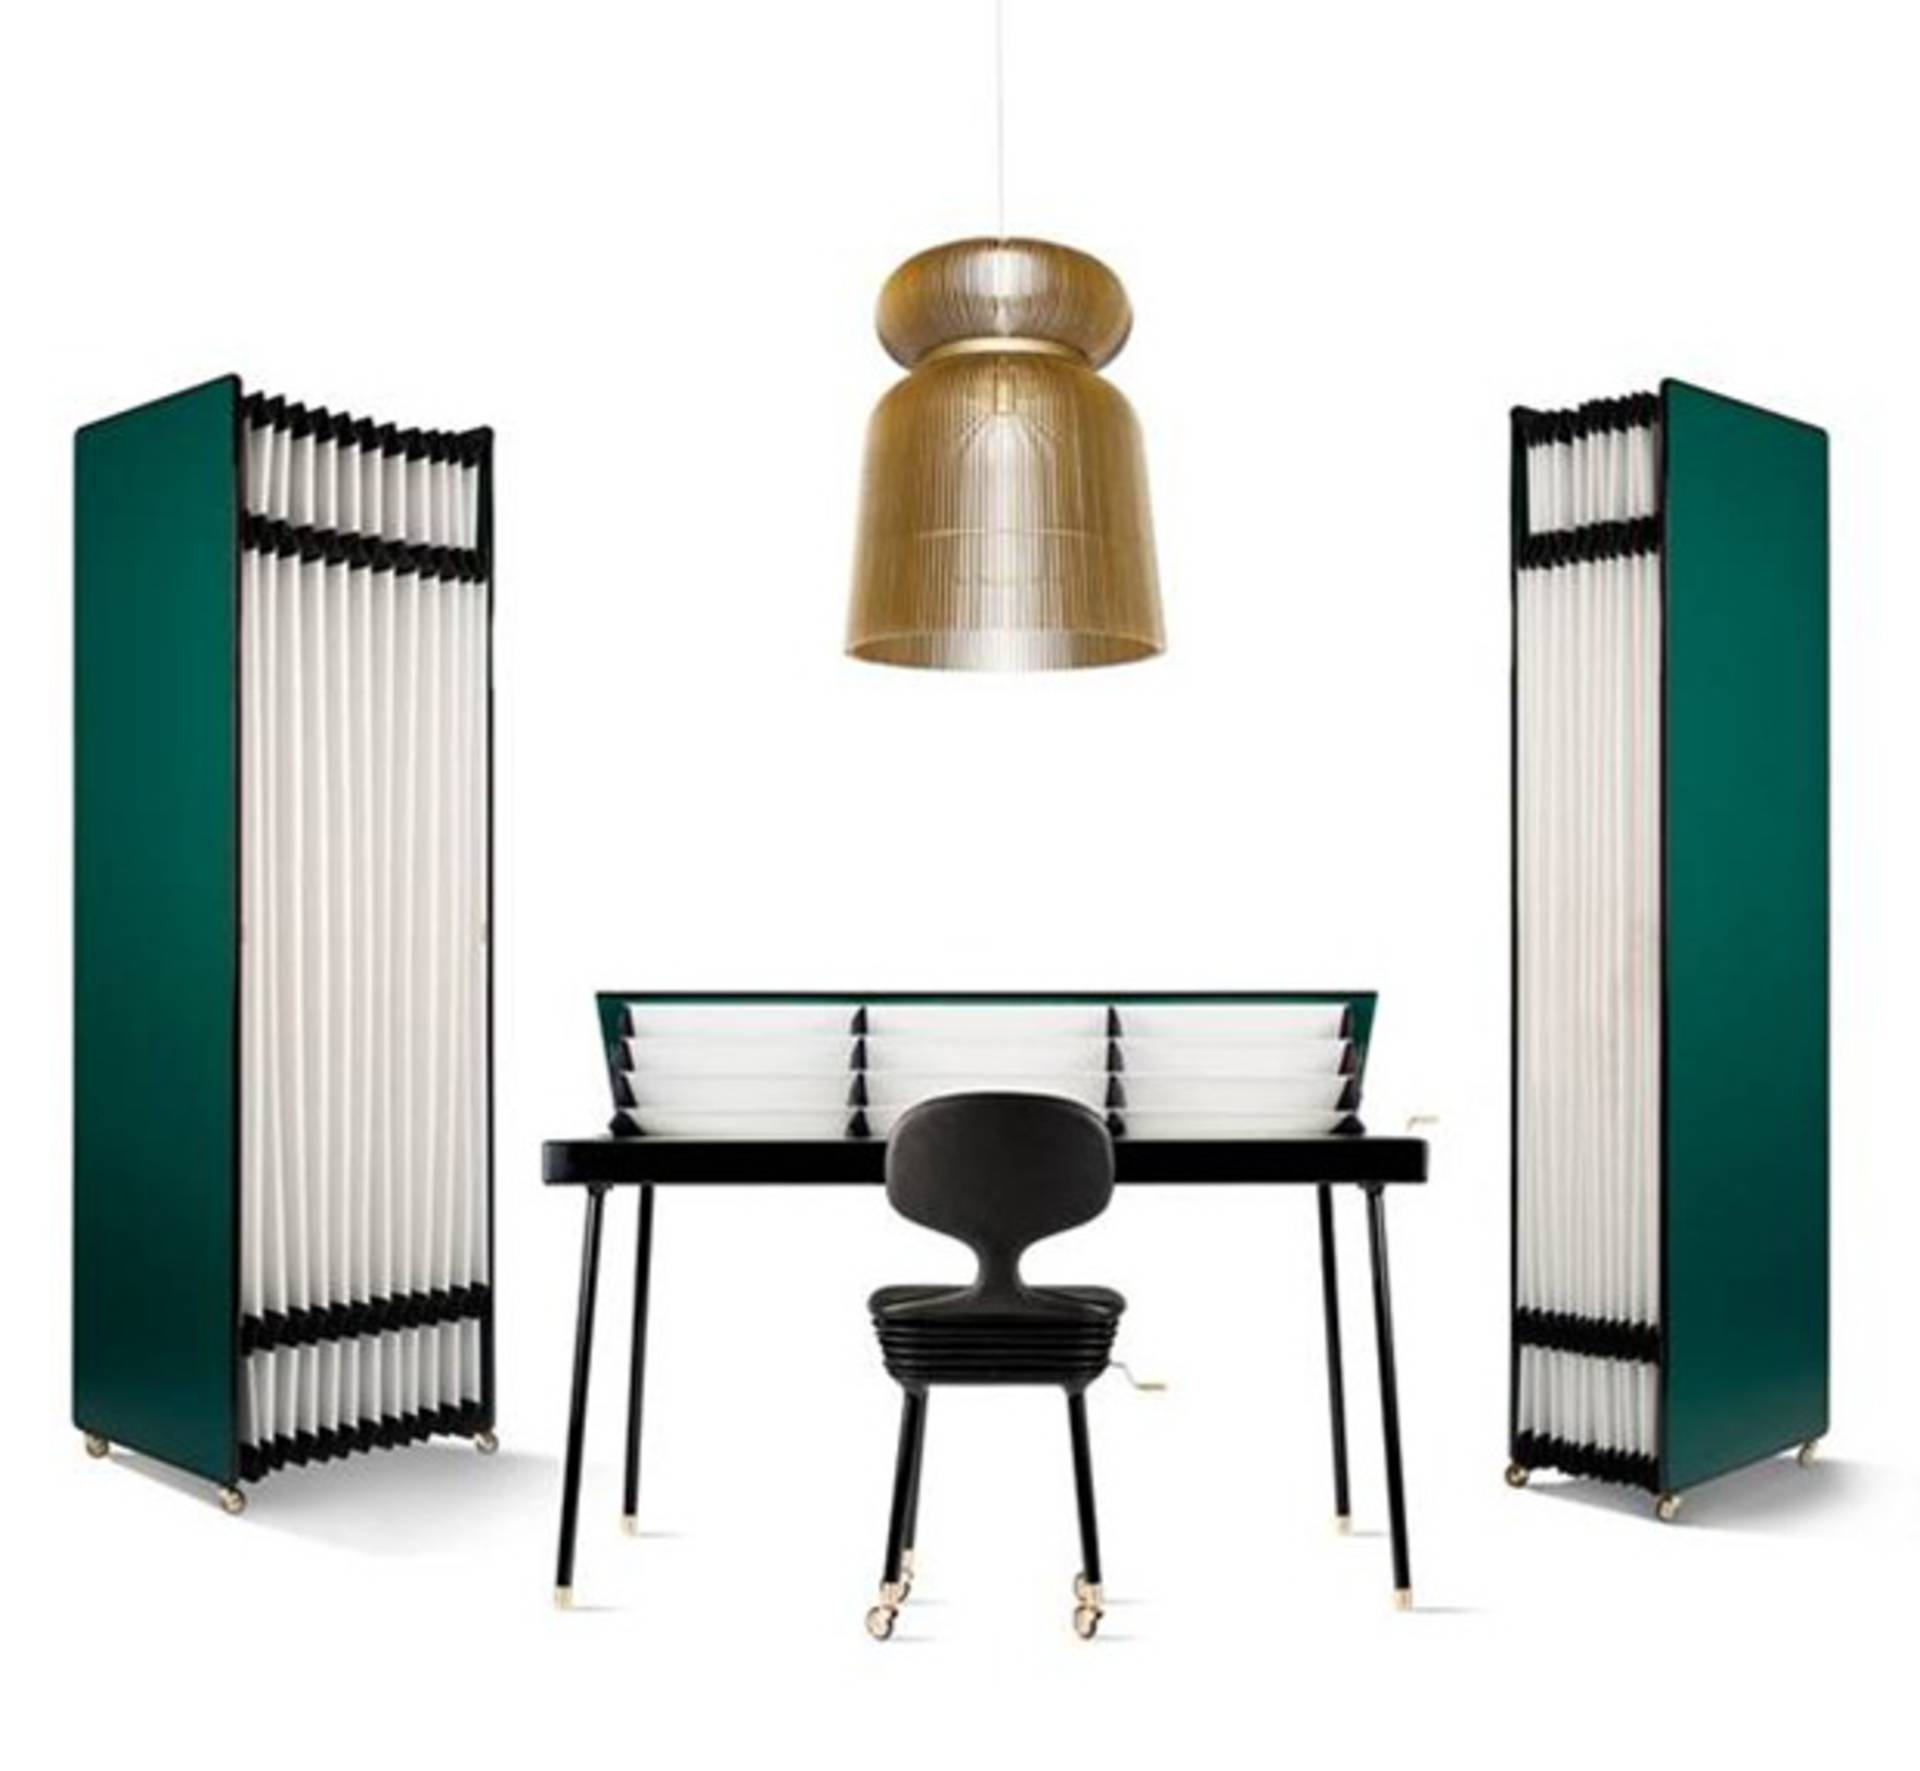 Contemporary Furniture Collection Nika Zupanc Rsquo S Self